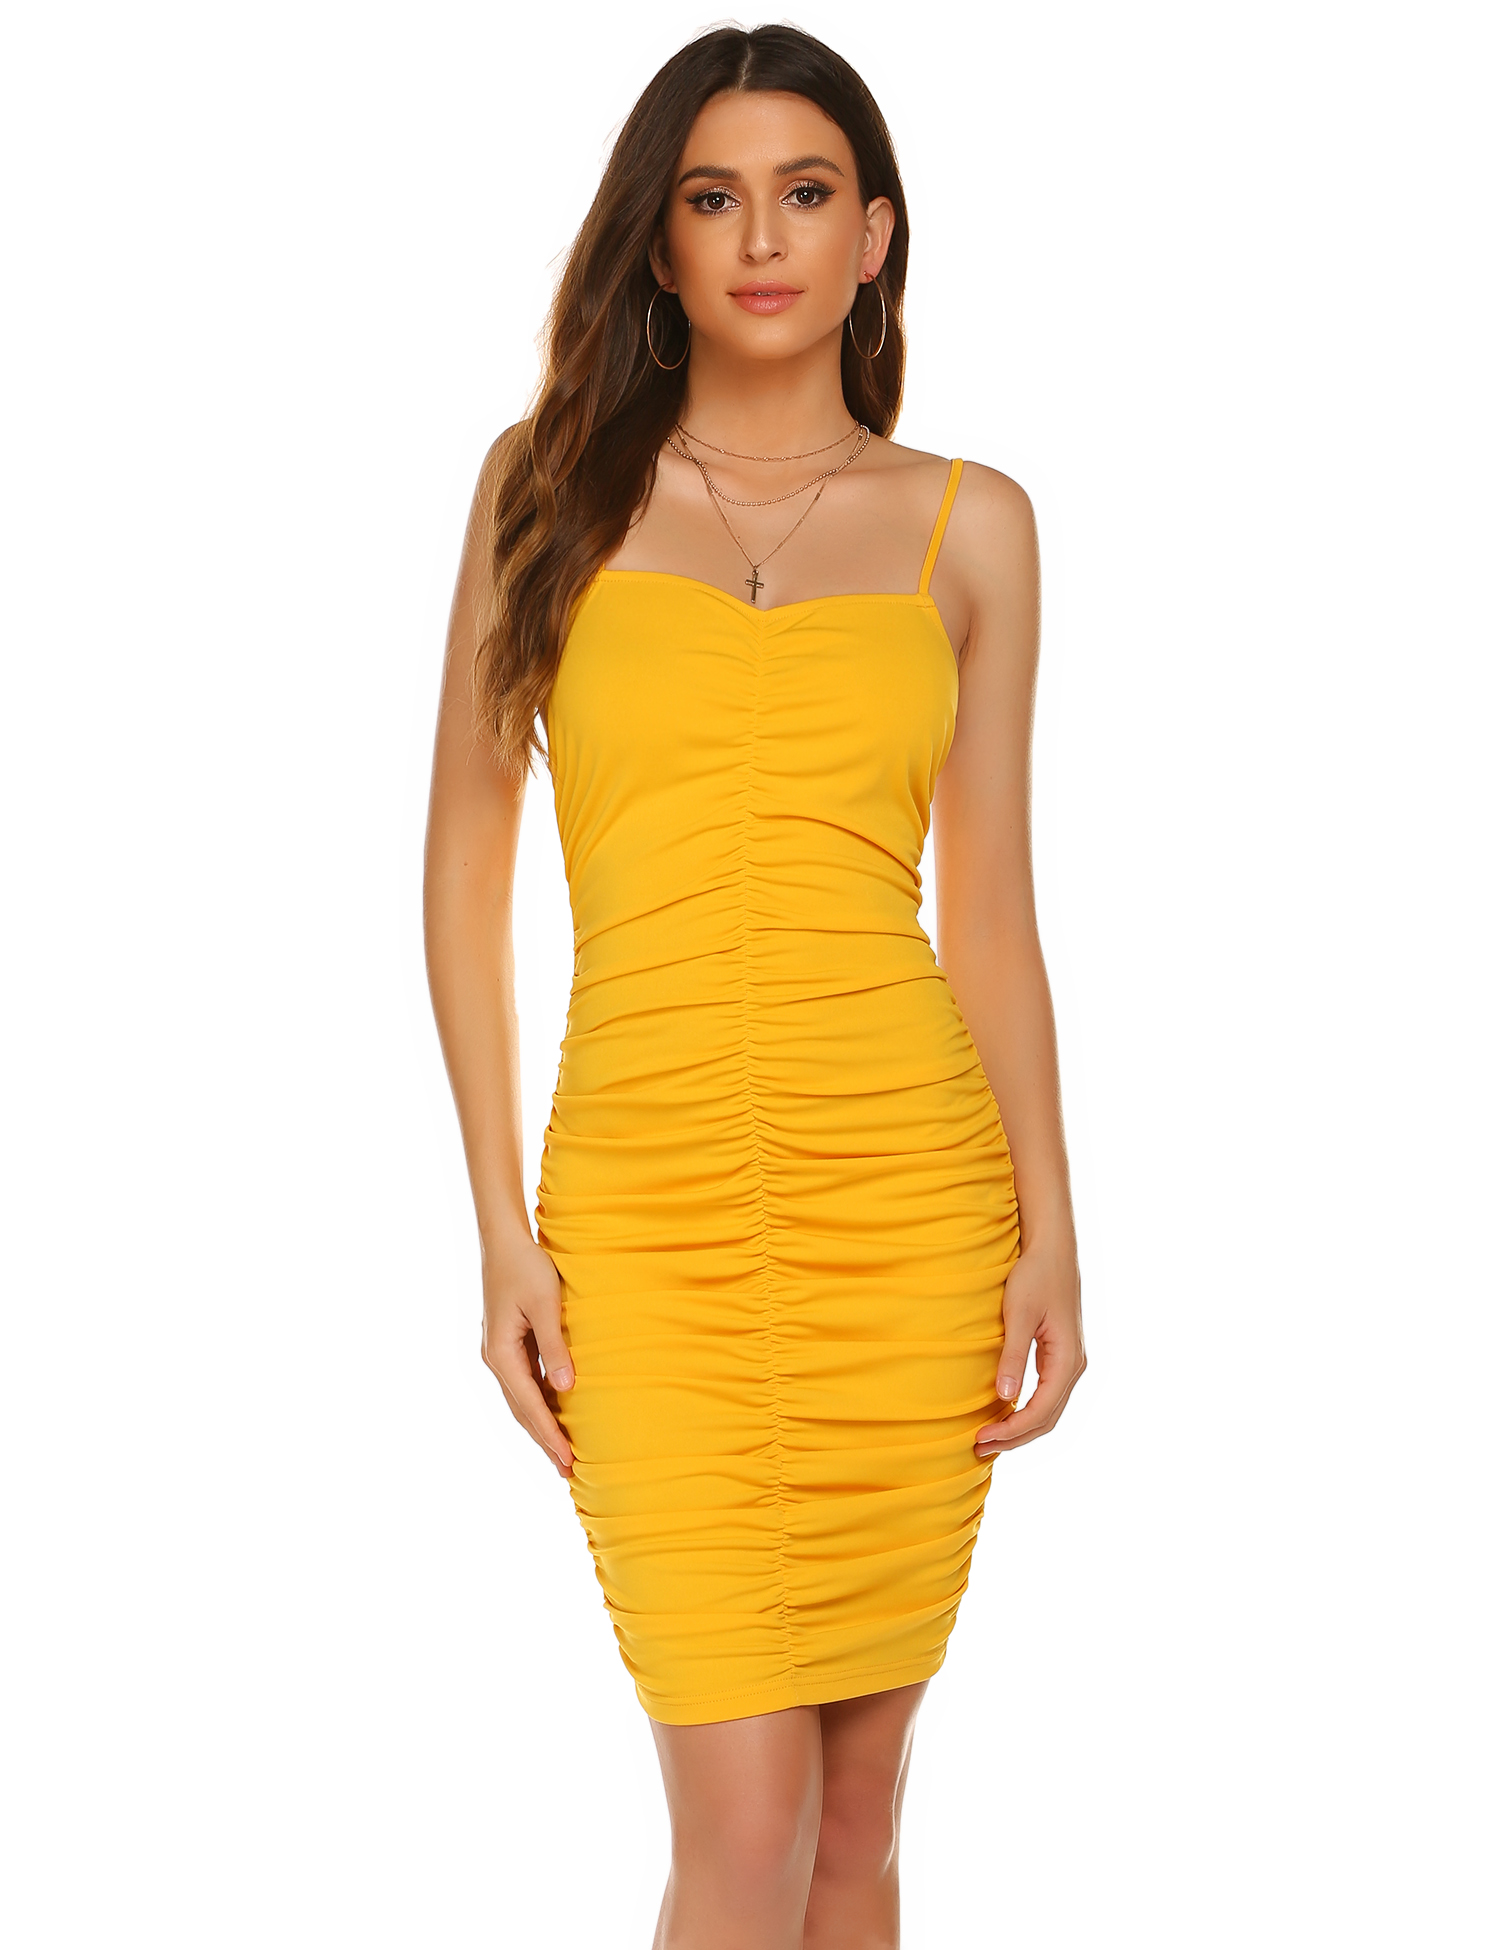 <font><b>Sexy</b></font> Women Spaghetti Strap <font><b>Dress</b></font> Strapless Sleeveless <font><b>Backless</b></font> Pleated Colour Yellow Bodycon Party <font><b>Dress</b></font> Slim Style 2020 image